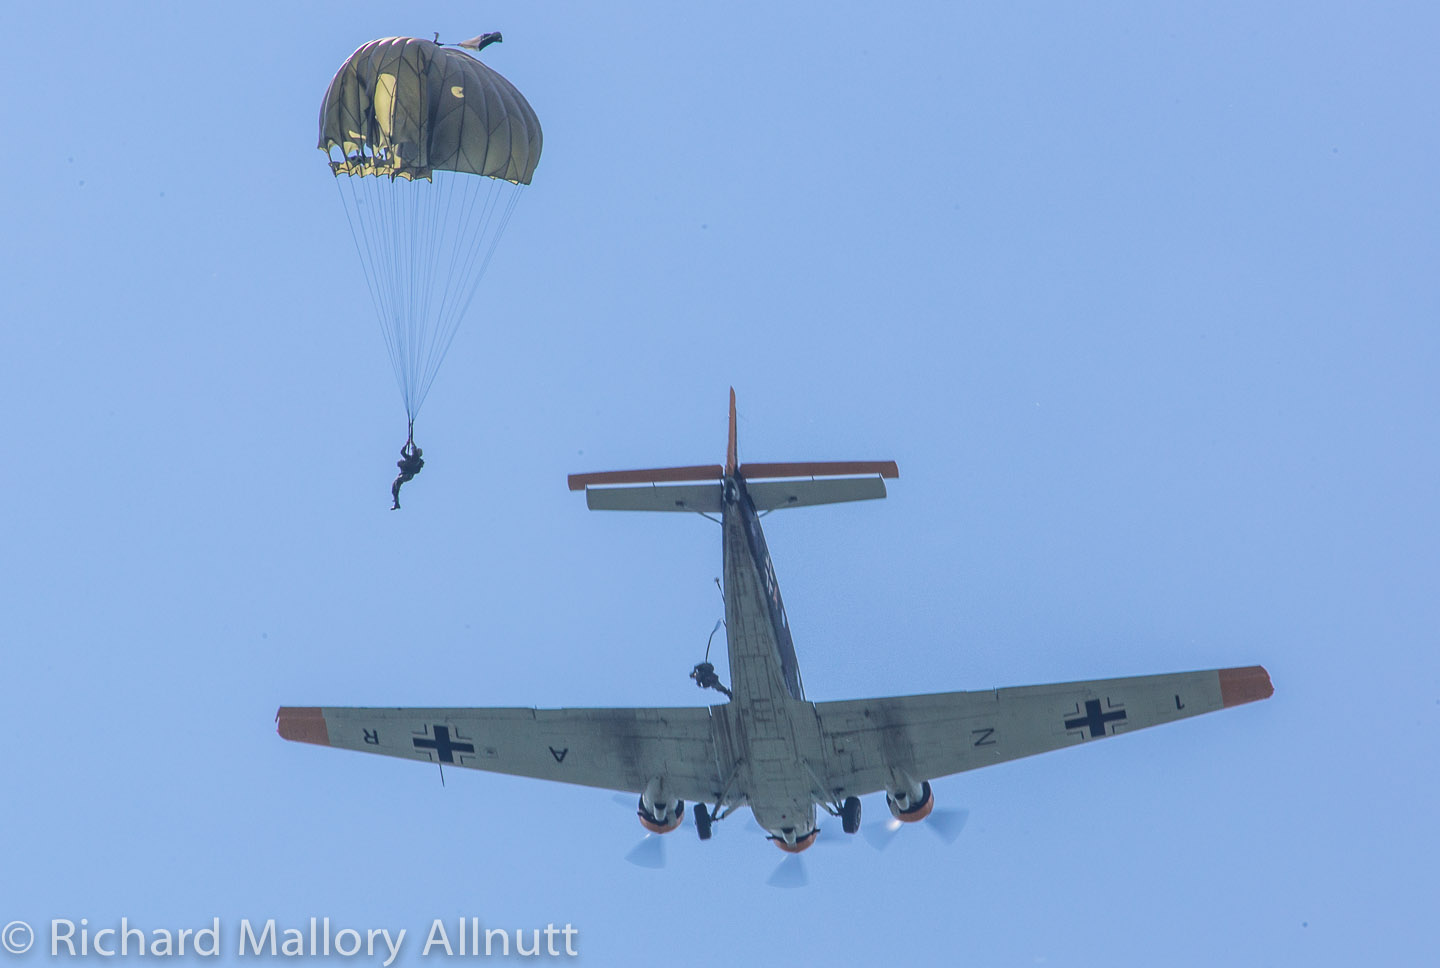 _C8A0200 - Richard Mallory Allnutt photo - Warbirds Over the Beach - Military Aviation Museum - Pungo, VA - May 17, 2014